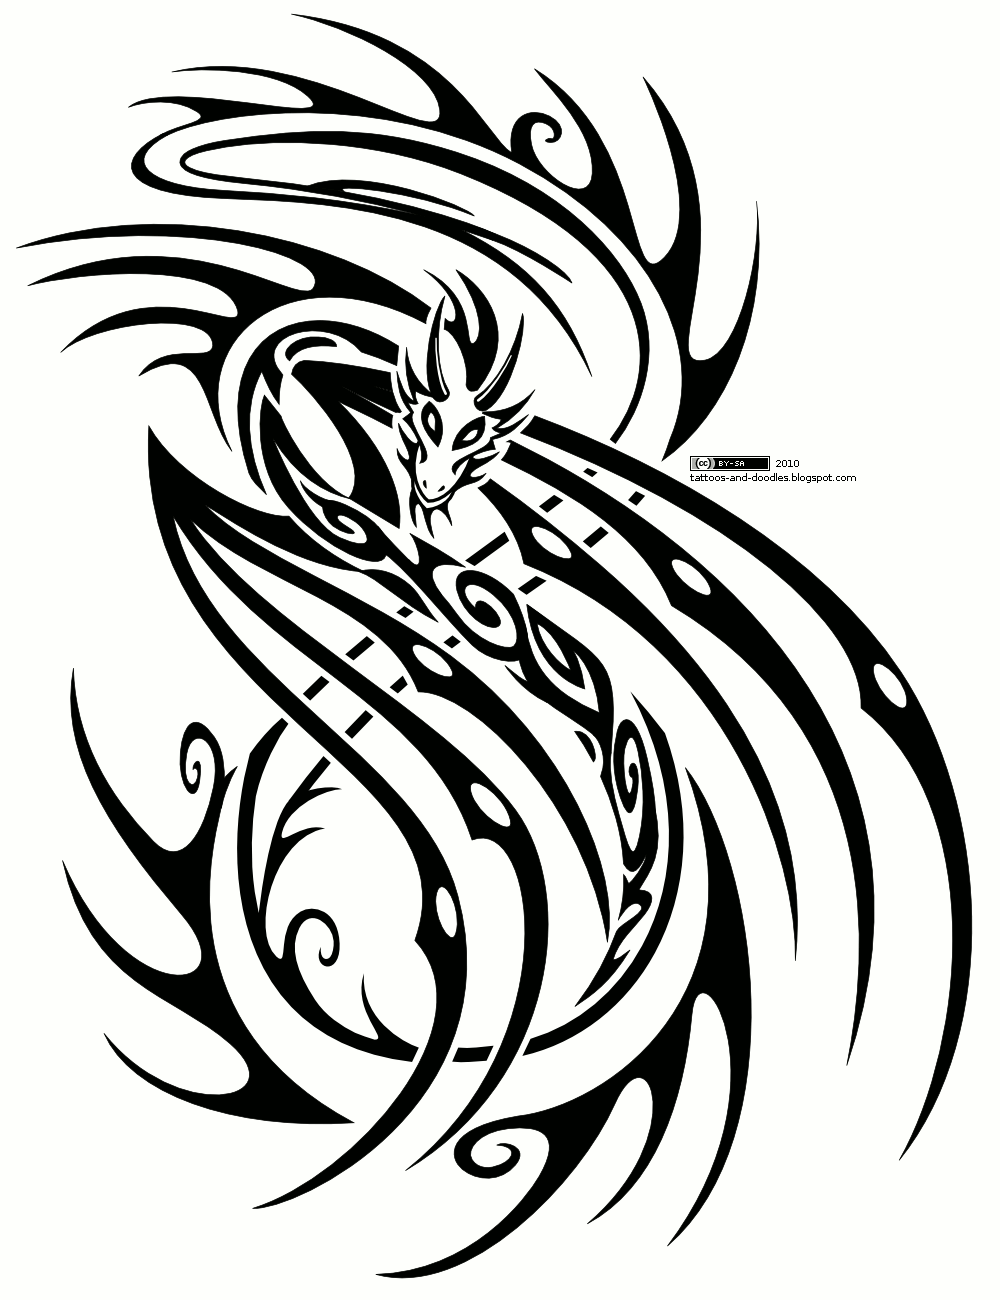 Tattoos And Doodles November 2010 Tribal Dragon Tattoos Tribal Tattoos Tribal Tattoo Designs